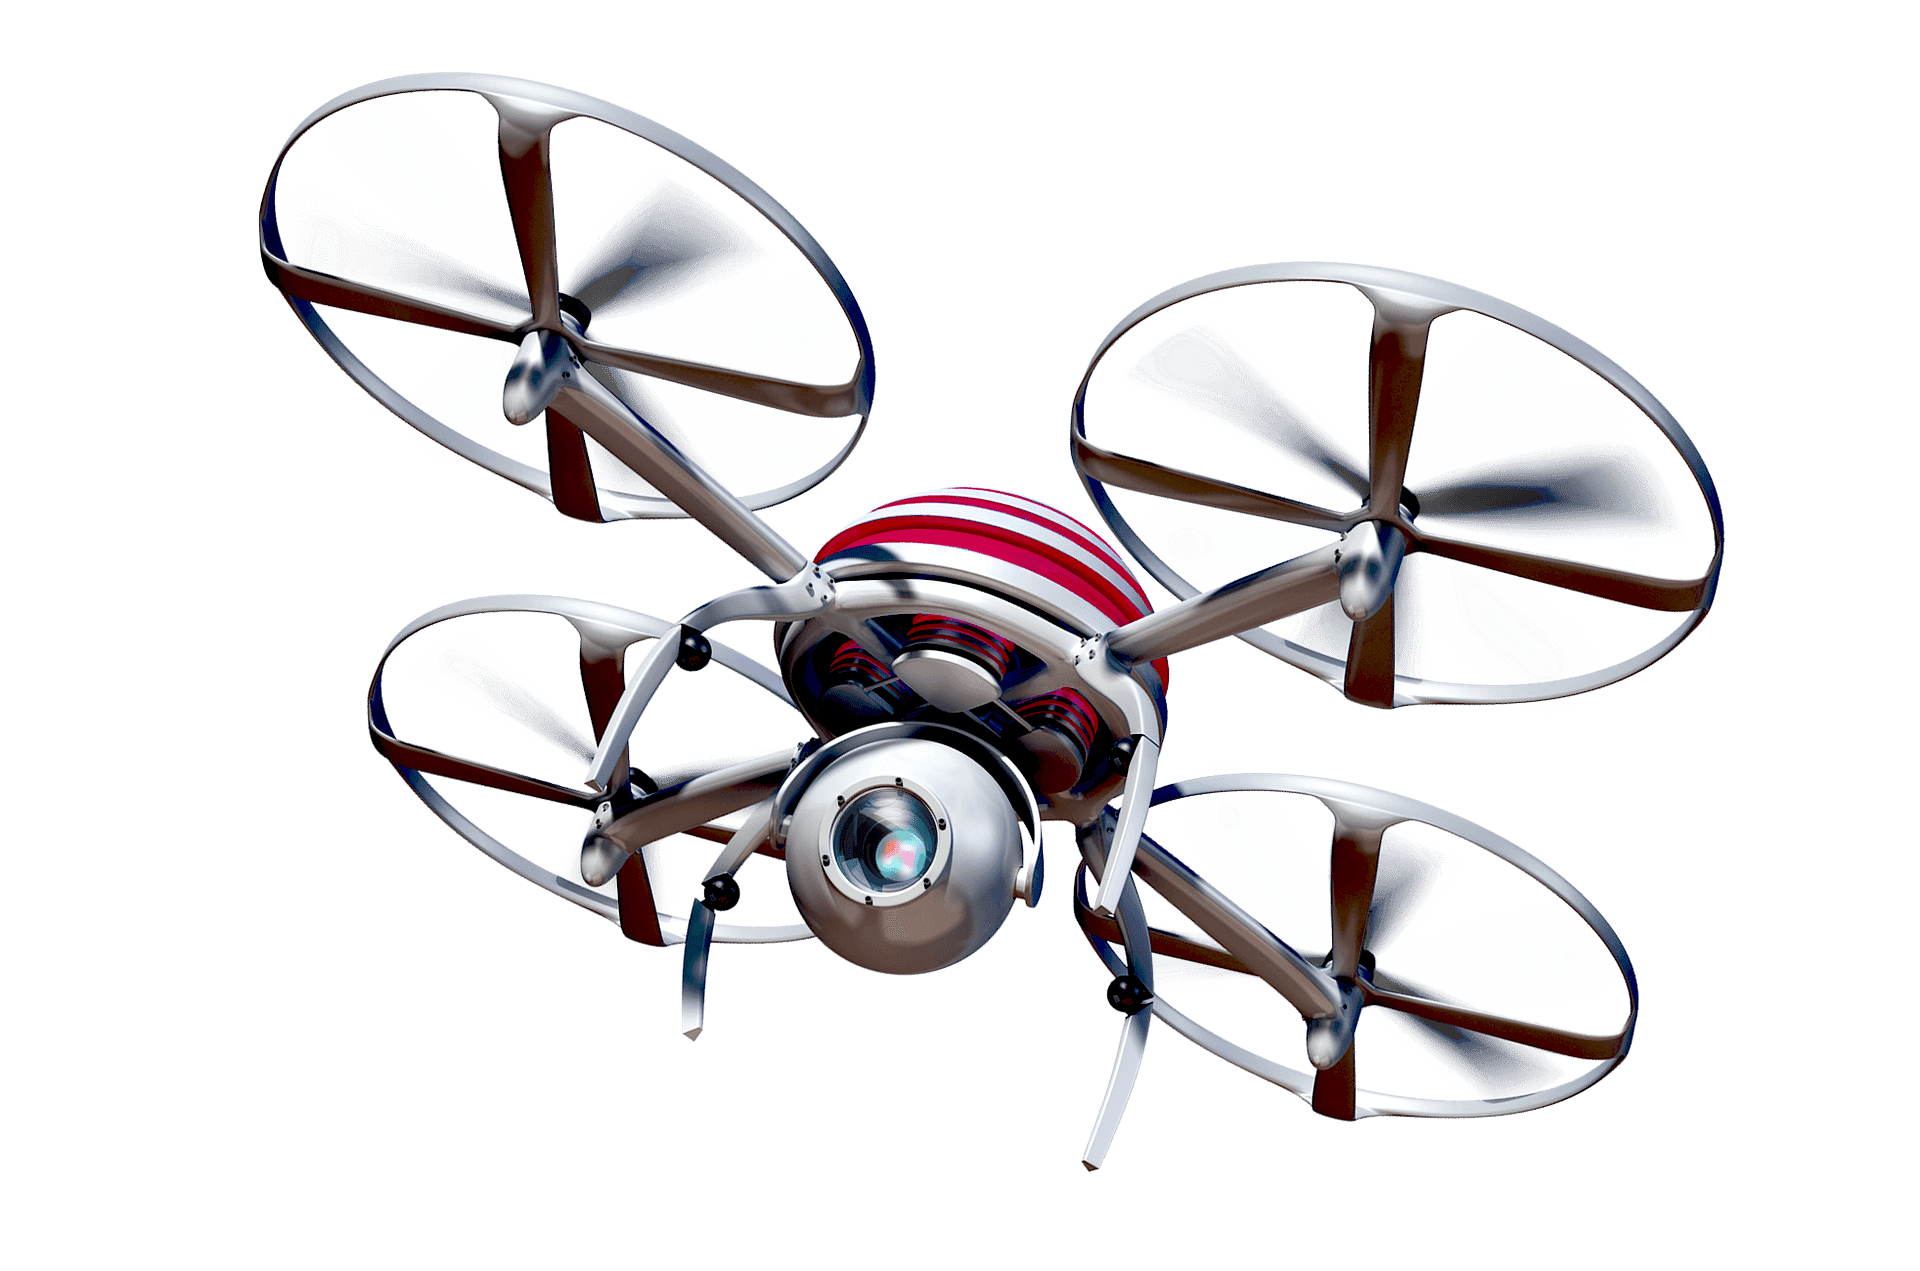 content/en-global/images/repository/isc/2020/a-spy-drone-with-large-camera-lens.png